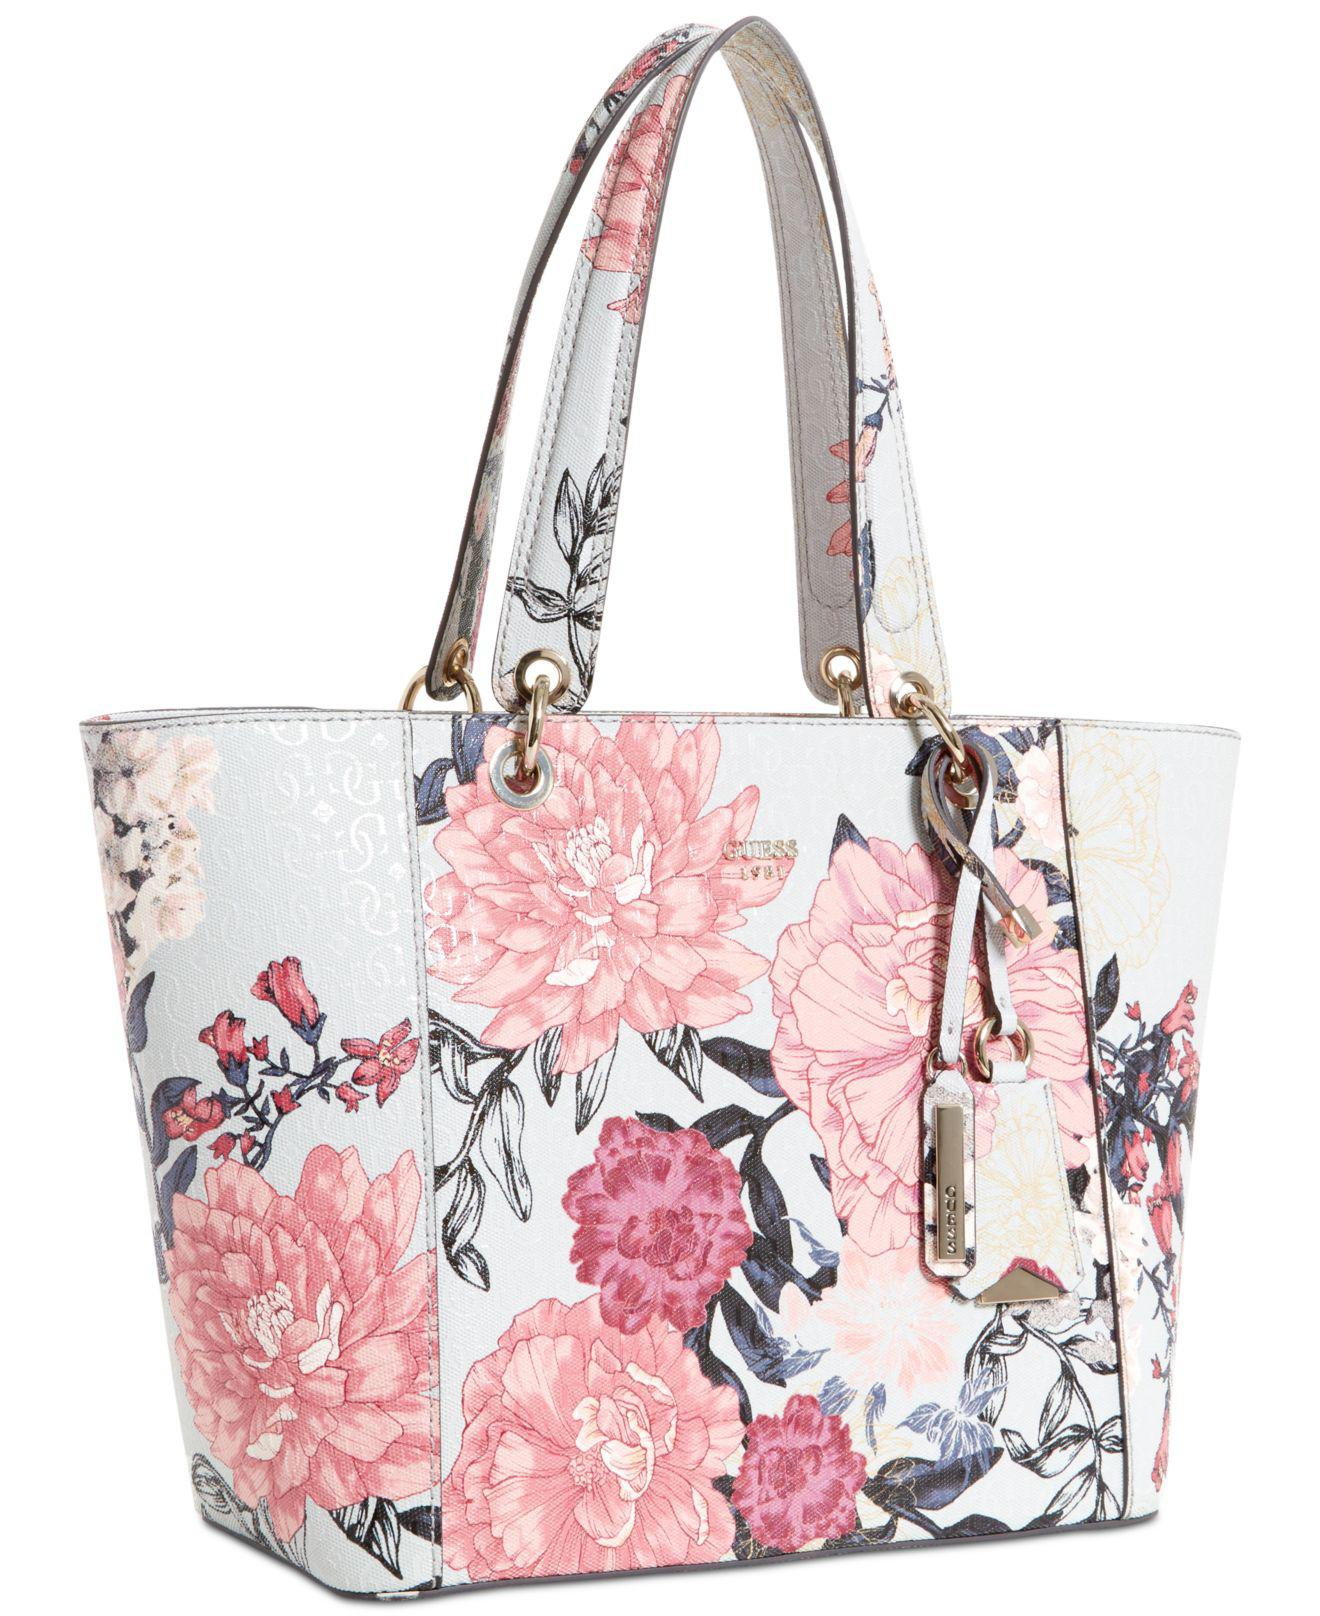 940adb857259 Lyst - Guess Kamryn Extra-large Tote